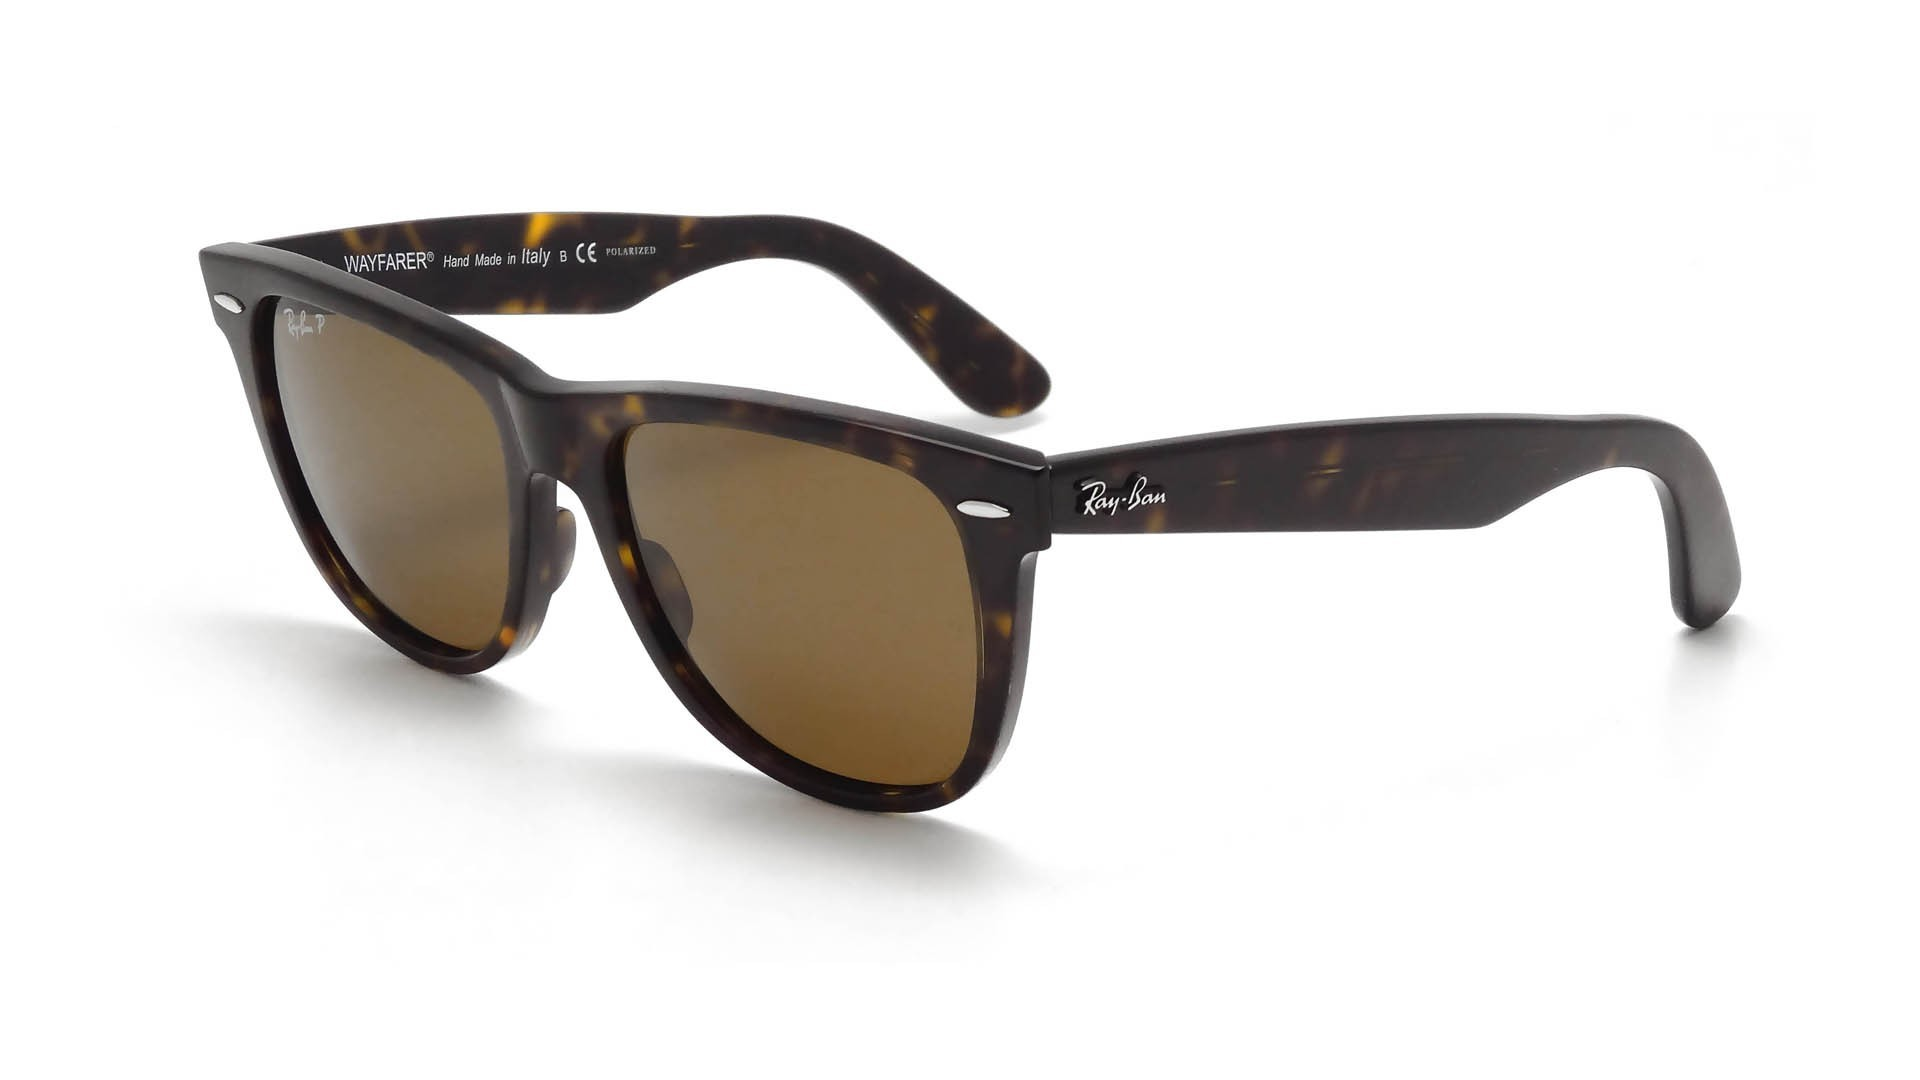 Medium Original 22 Ban Écaille 50 Ray Rb2140 Wayfarer P Polarisés 90257 E2HDW9I